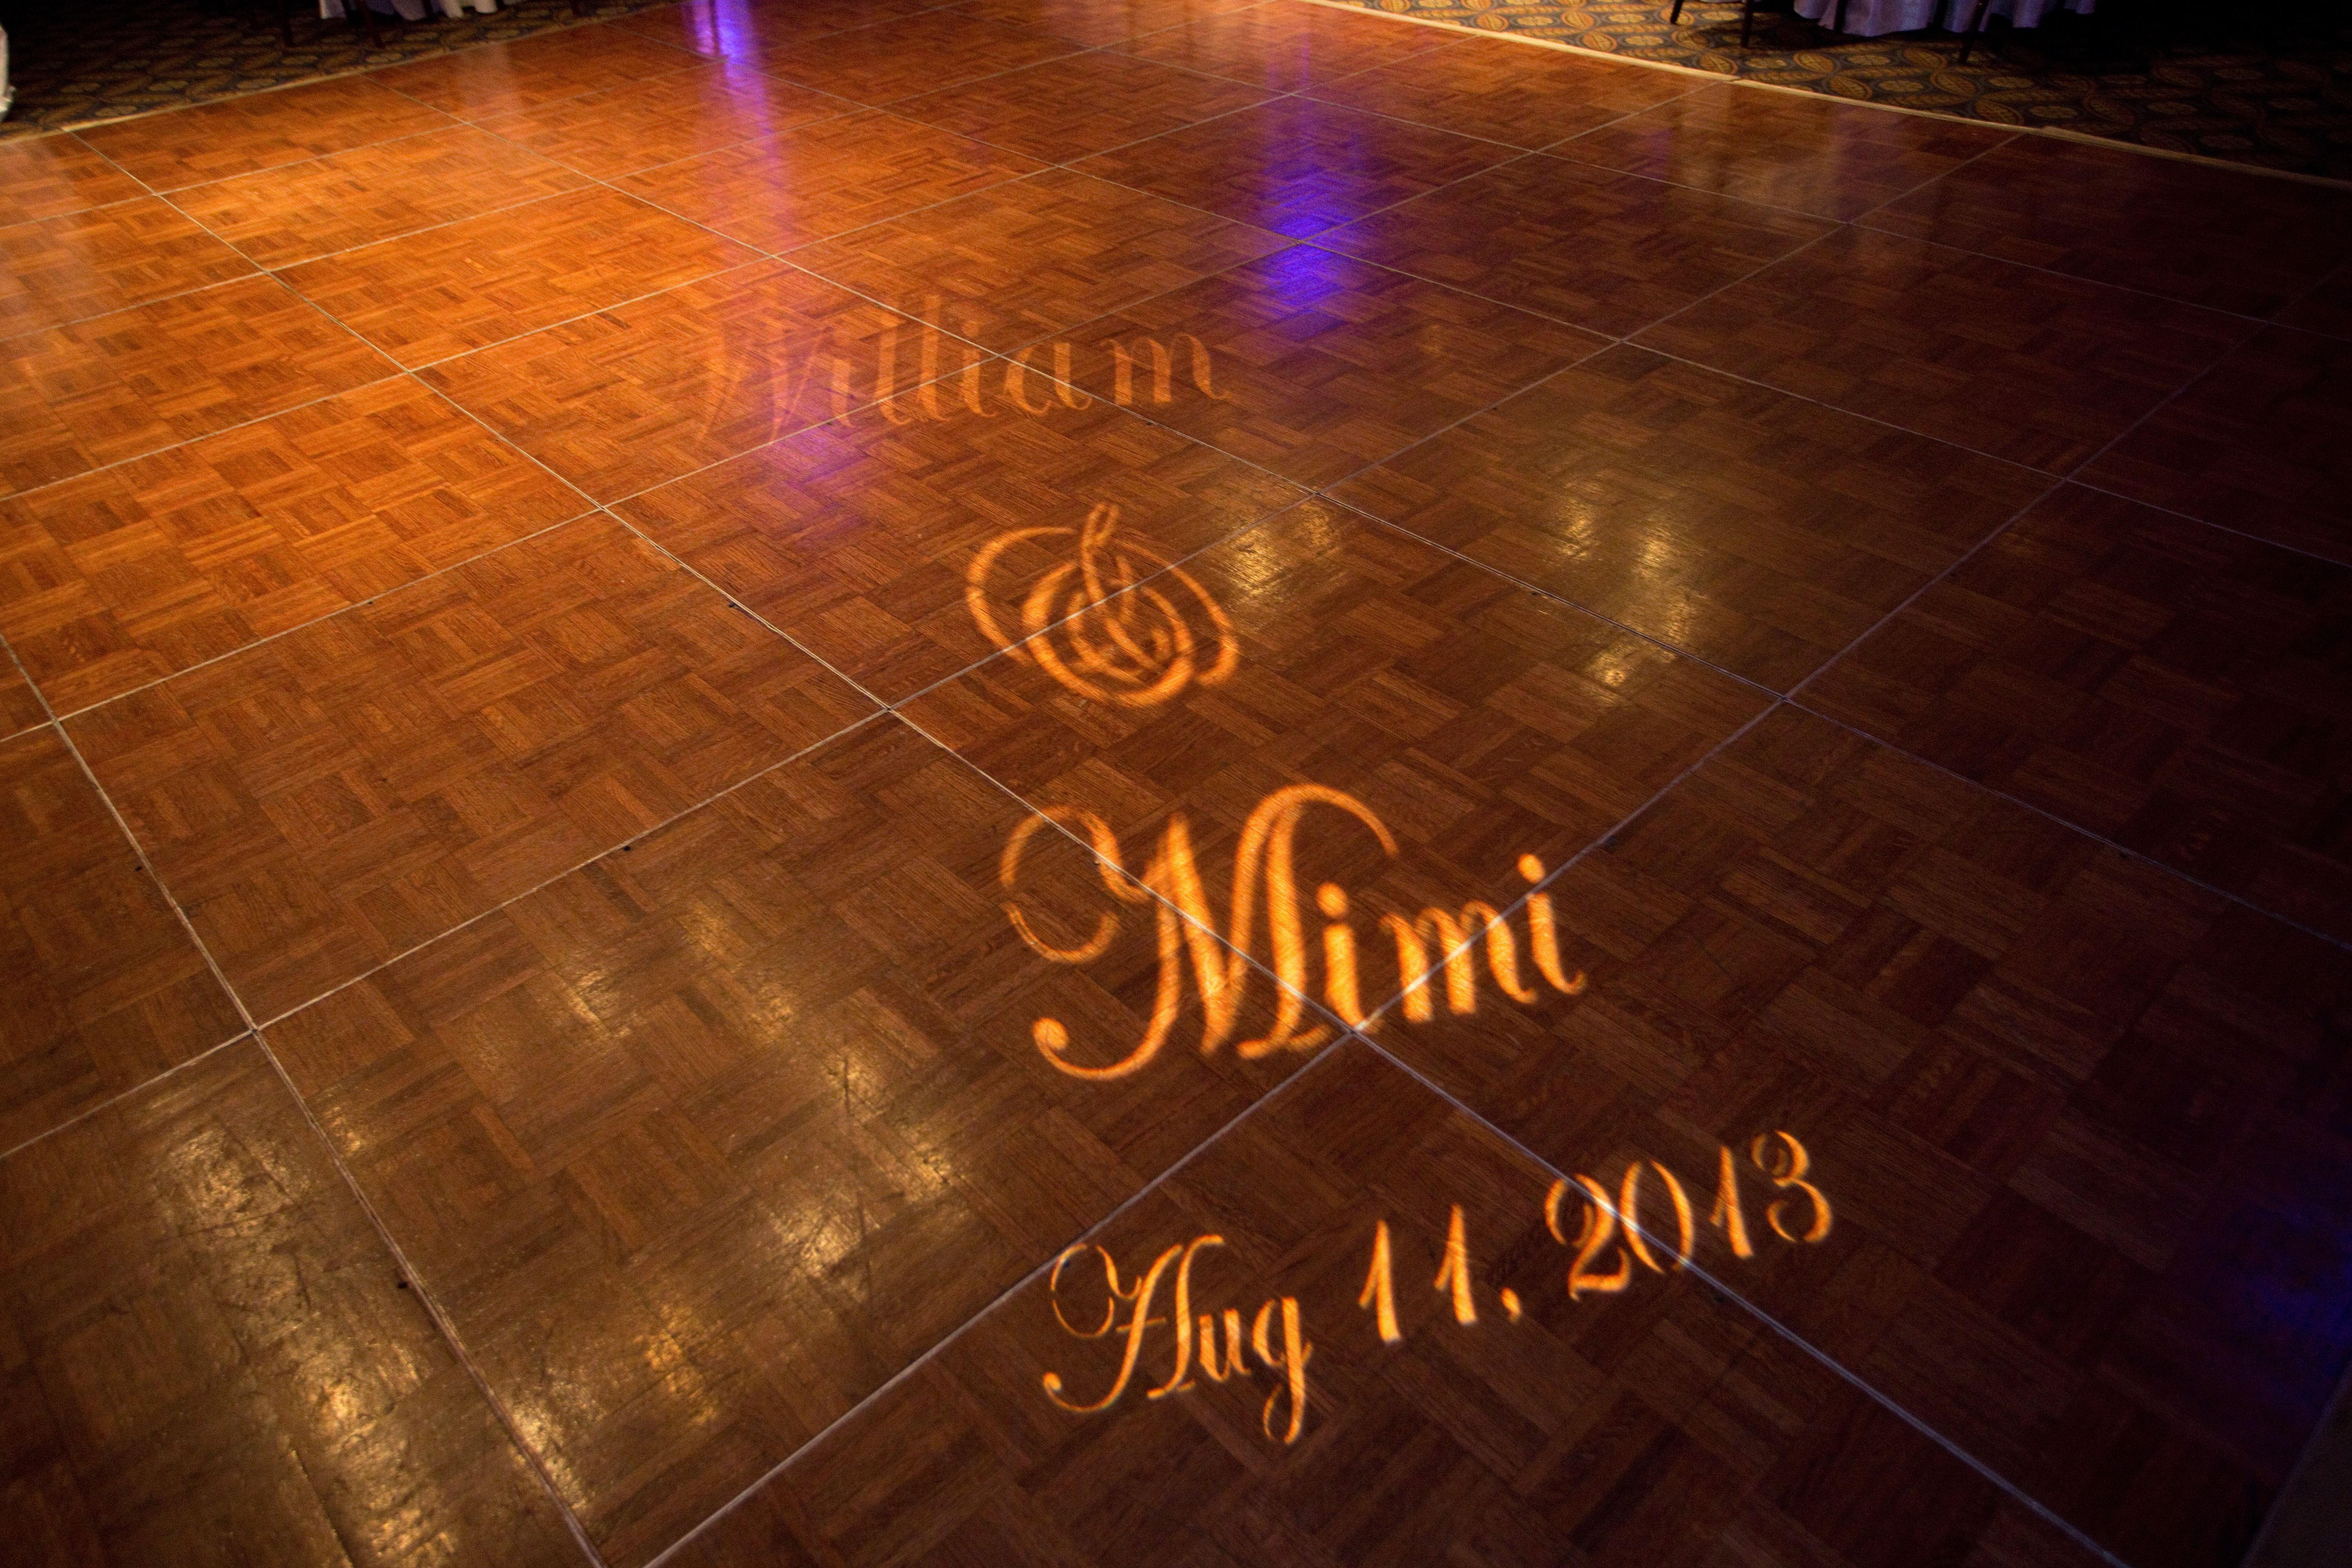 Hologram of our names and wedding date on the dance floor